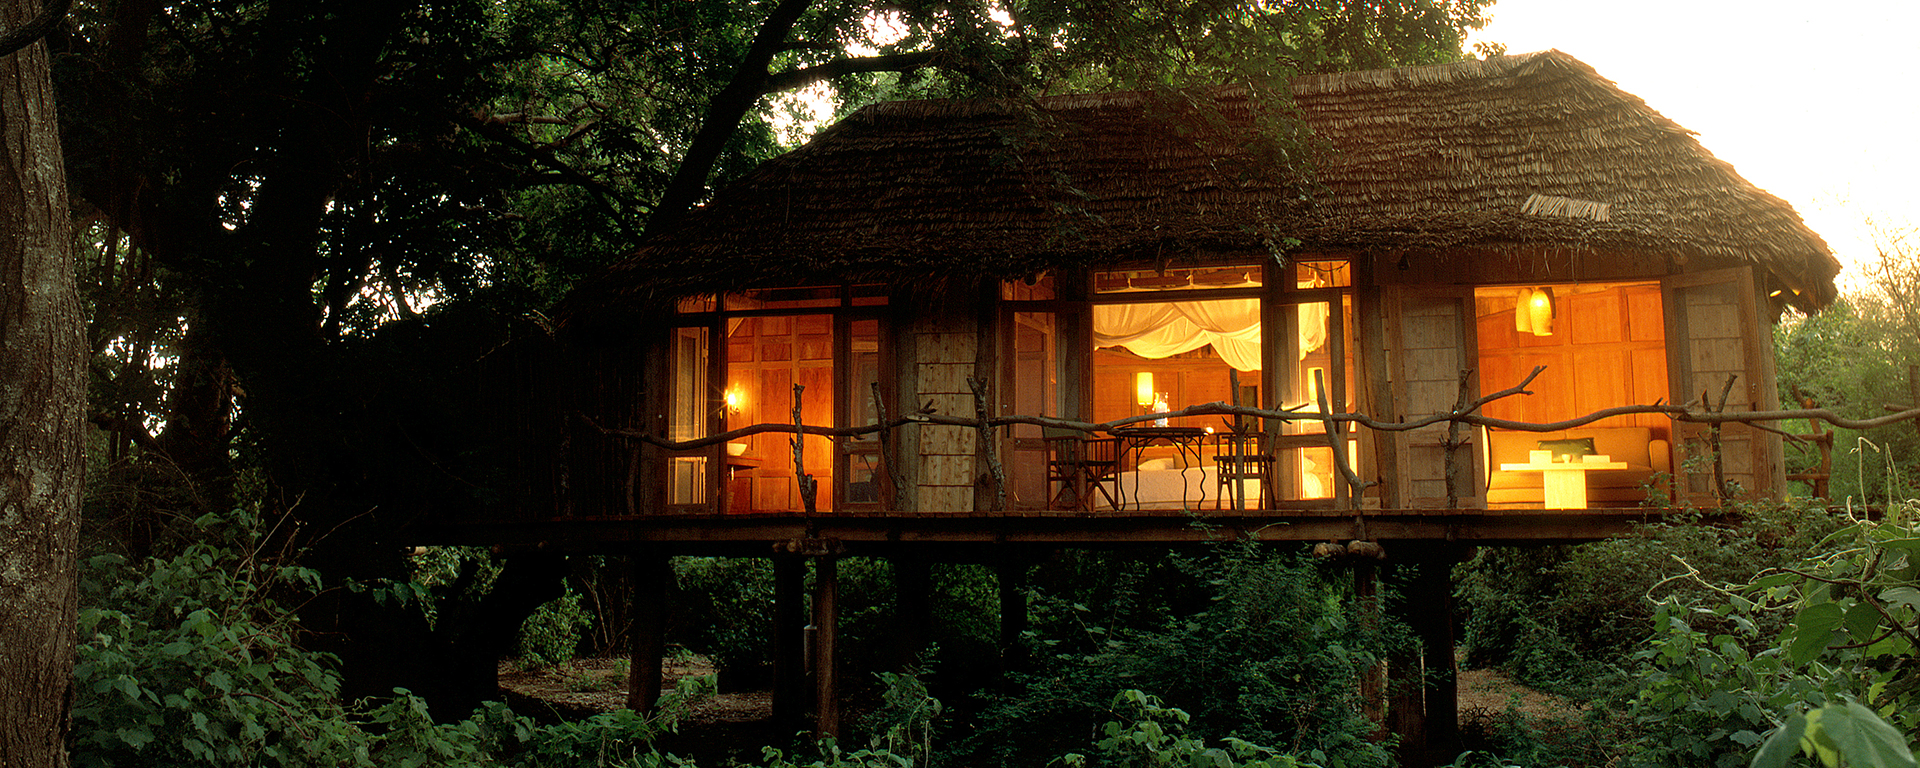 Lake Manyara Tree Lodge in Tanzania specialises in secluded love-nest tree houses for grown-ups.